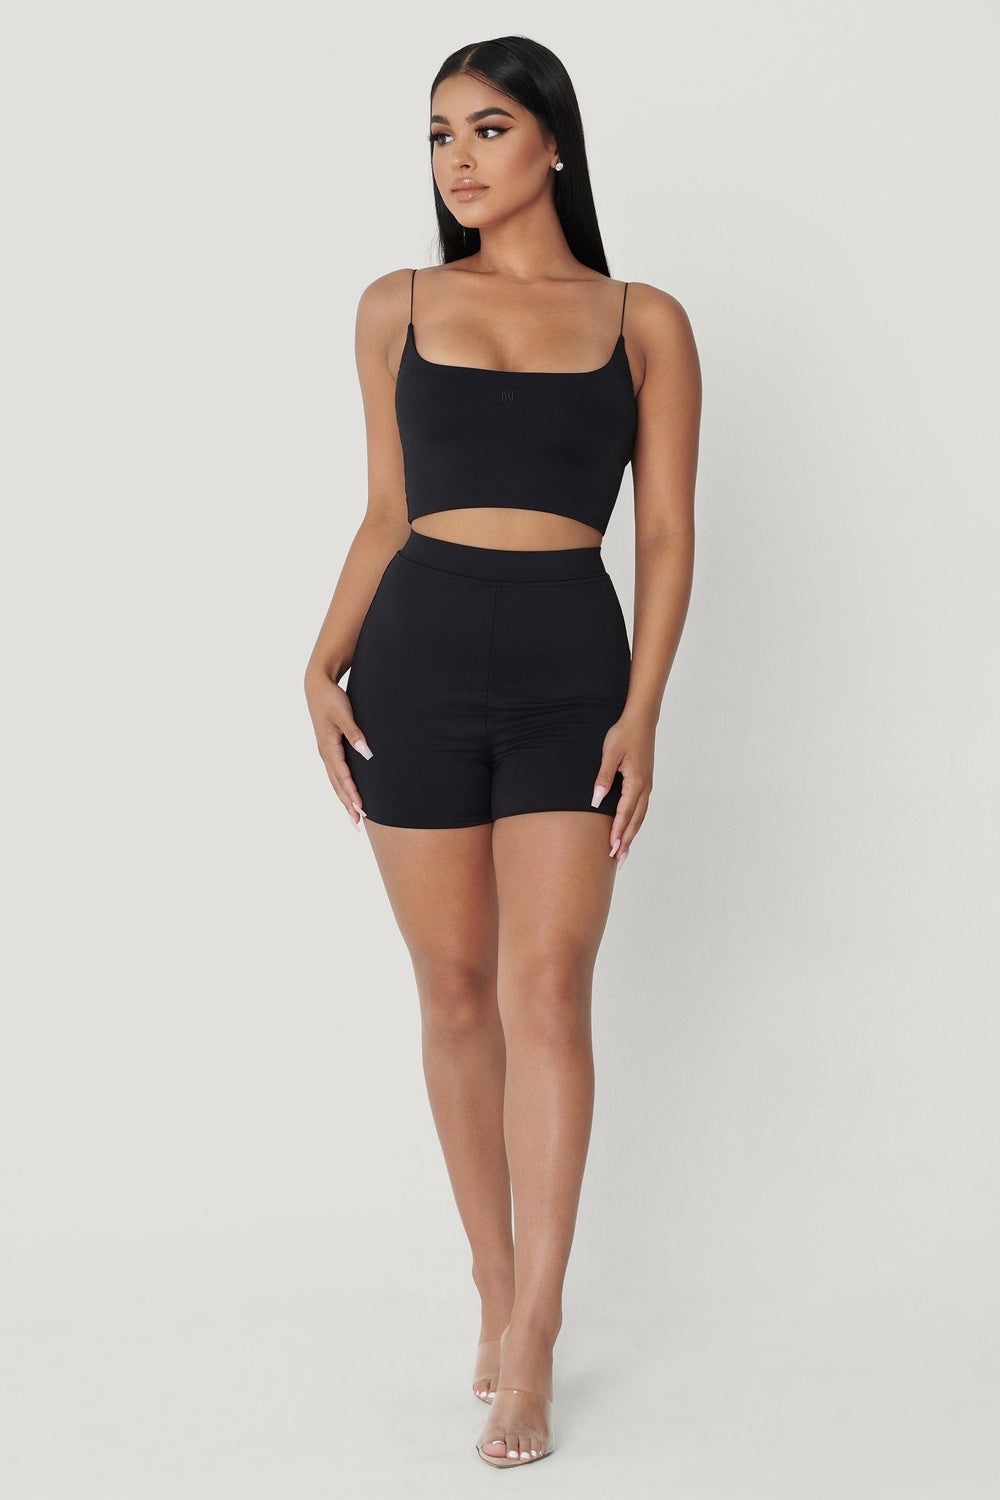 Tiffani Mini Bike Shorts - Black - MESHKI ?id=12232805744715